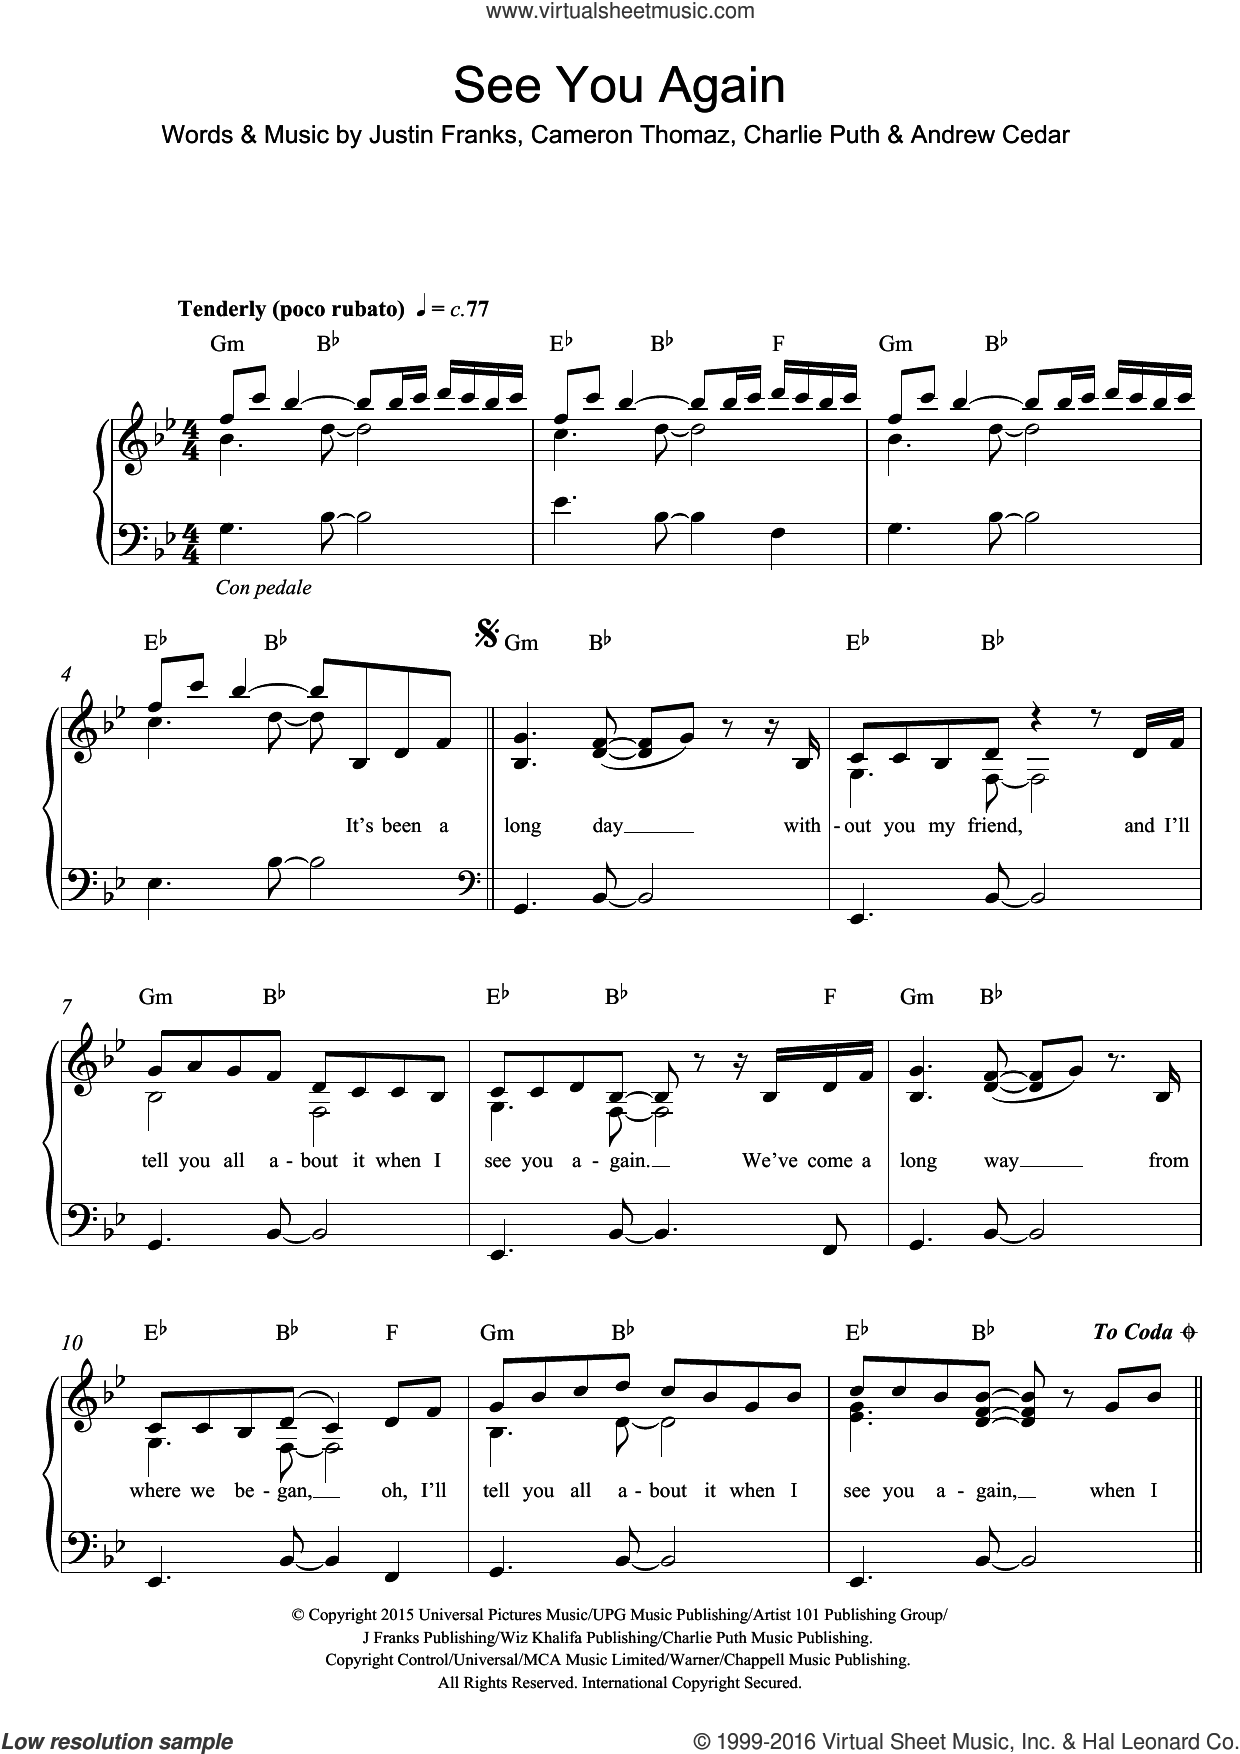 See You Again (featuring Charlie Puth) sheet music for piano solo by Wiz Khalifa, Andrew Cedar, Cameron Thomaz, Charlie Puth and Justin Franks, easy skill level